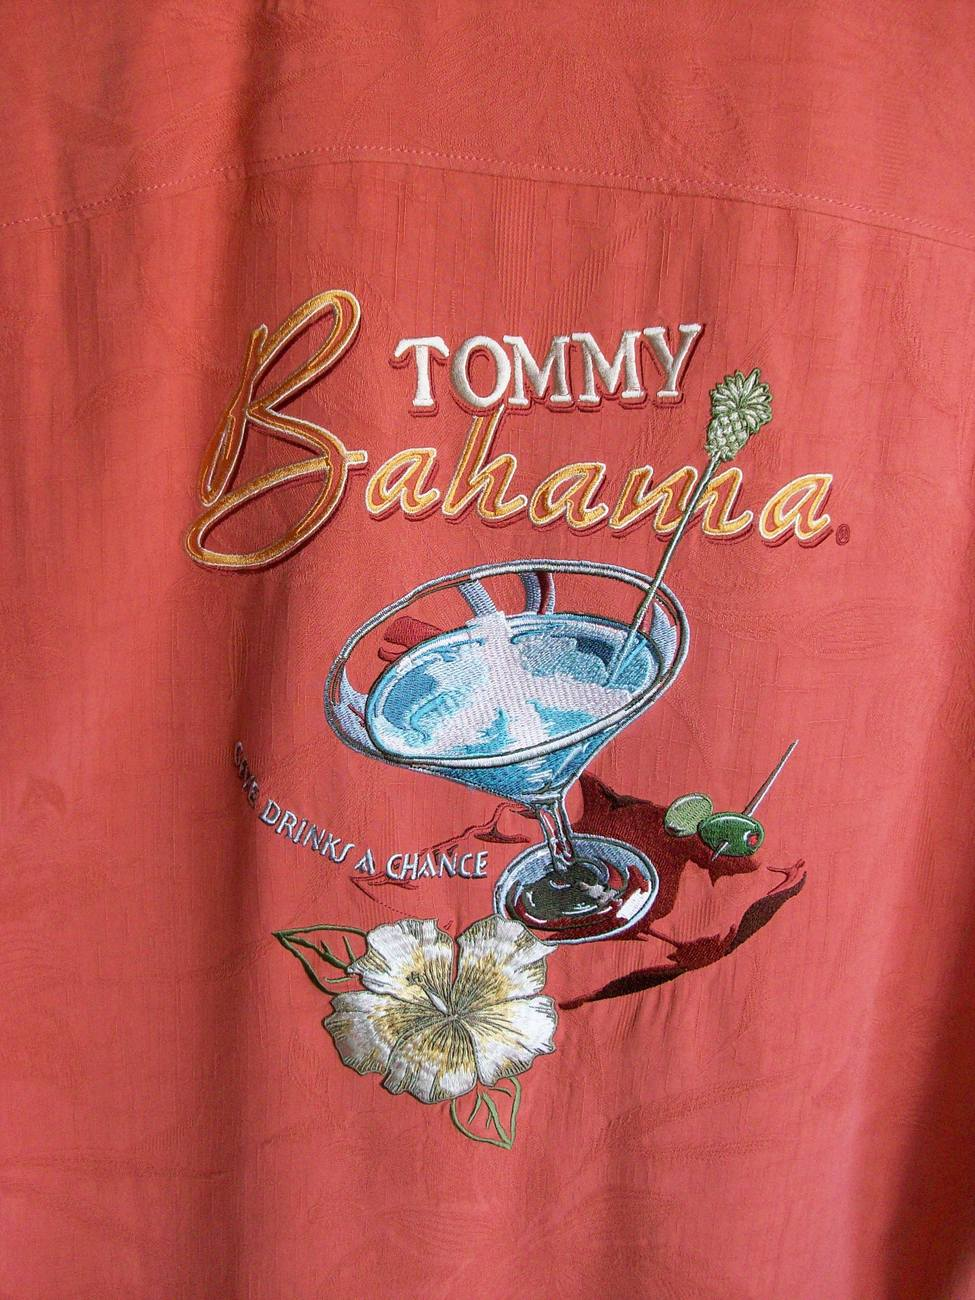 Tommy Bahama Men's Shirt, Give Drinks a Chance, Sz M, Barcelona, New